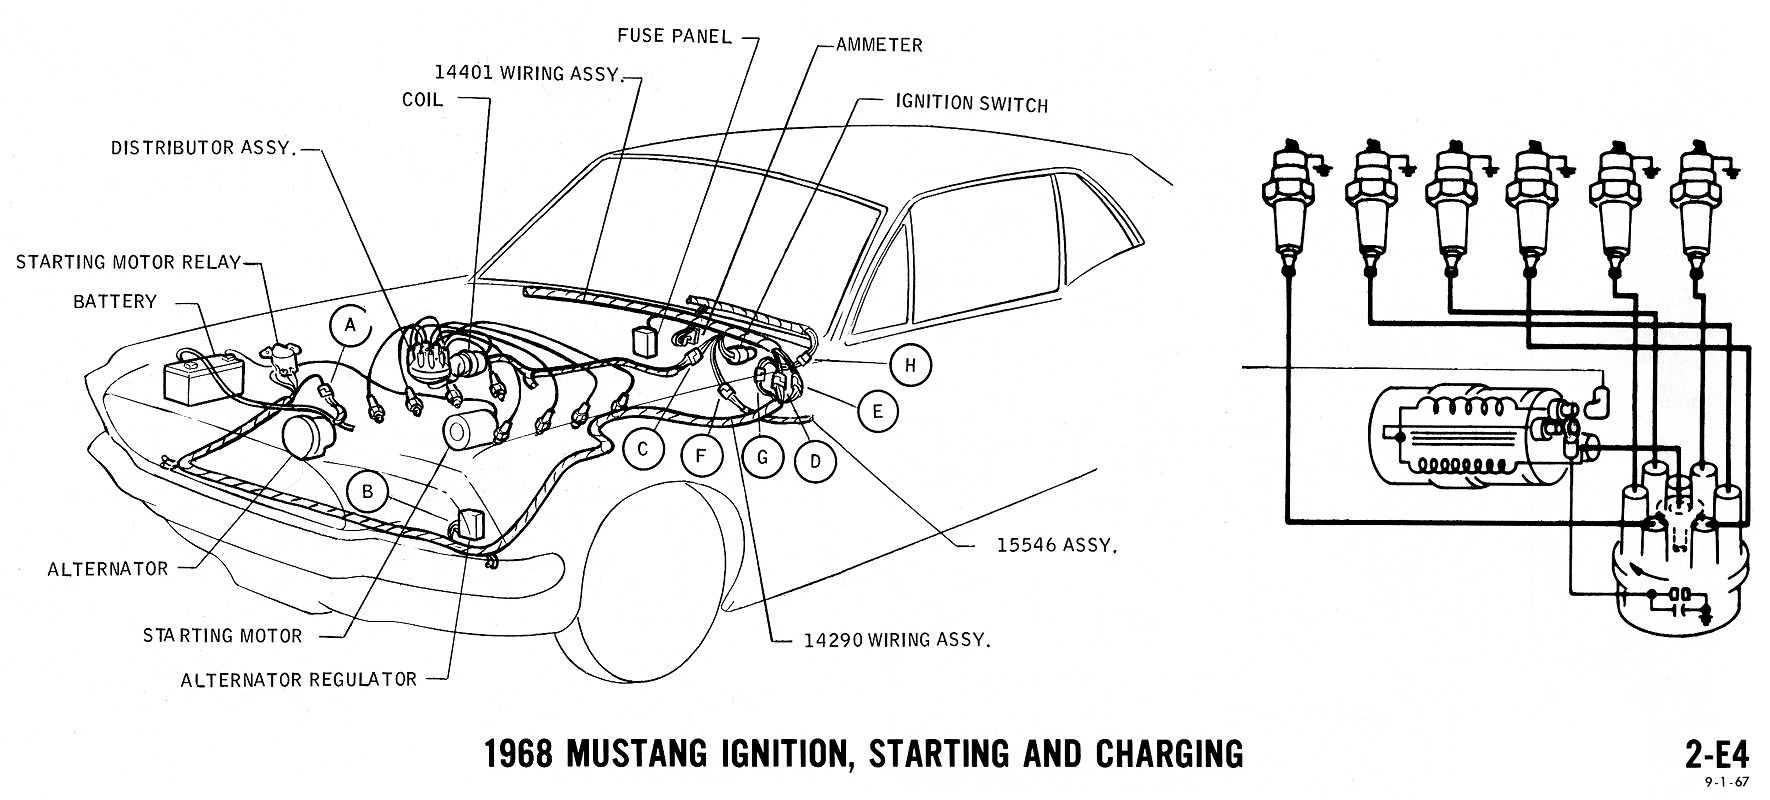 E4 1968 mustang wiring diagrams evolving software 65 mustang alternator wiring diagram at gsmx.co